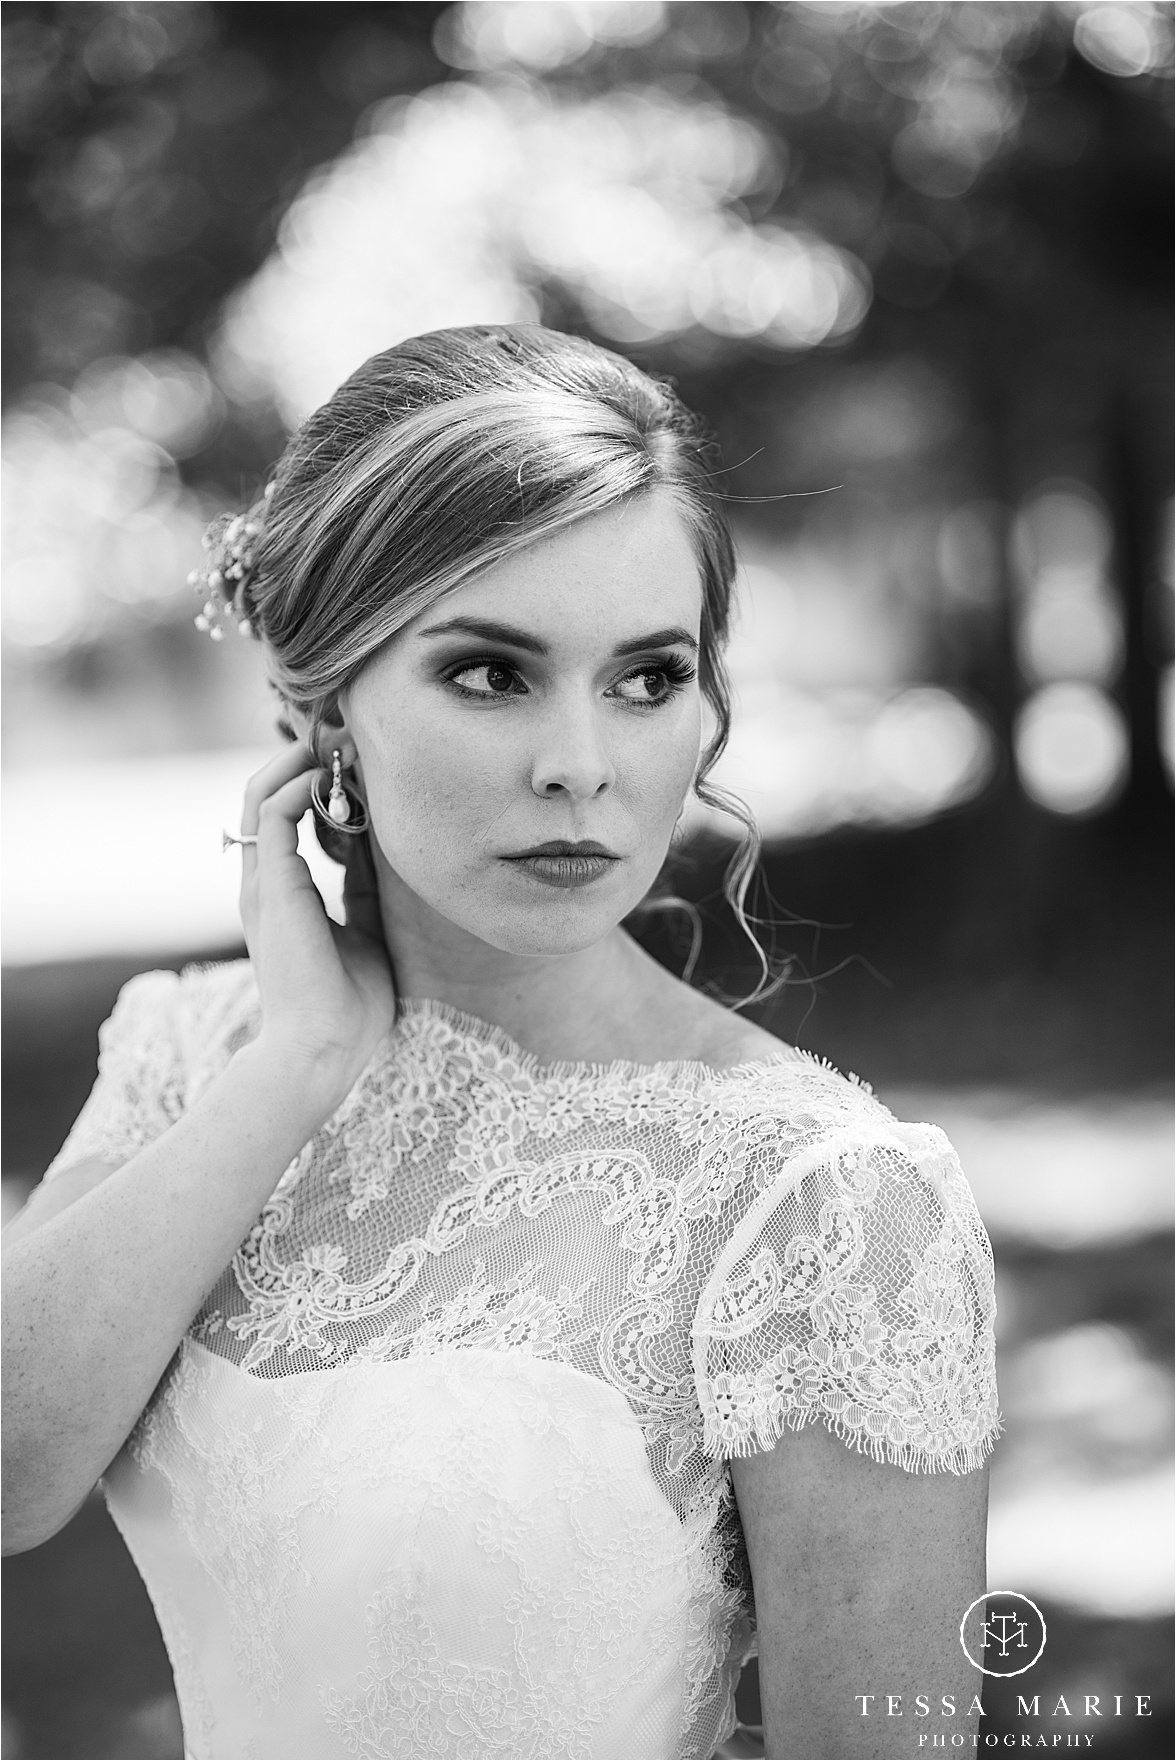 Tessa_marie_weddings_columbus_wedding_photographer_wedding_day_spring_outdoor_wedding_0032.jpg